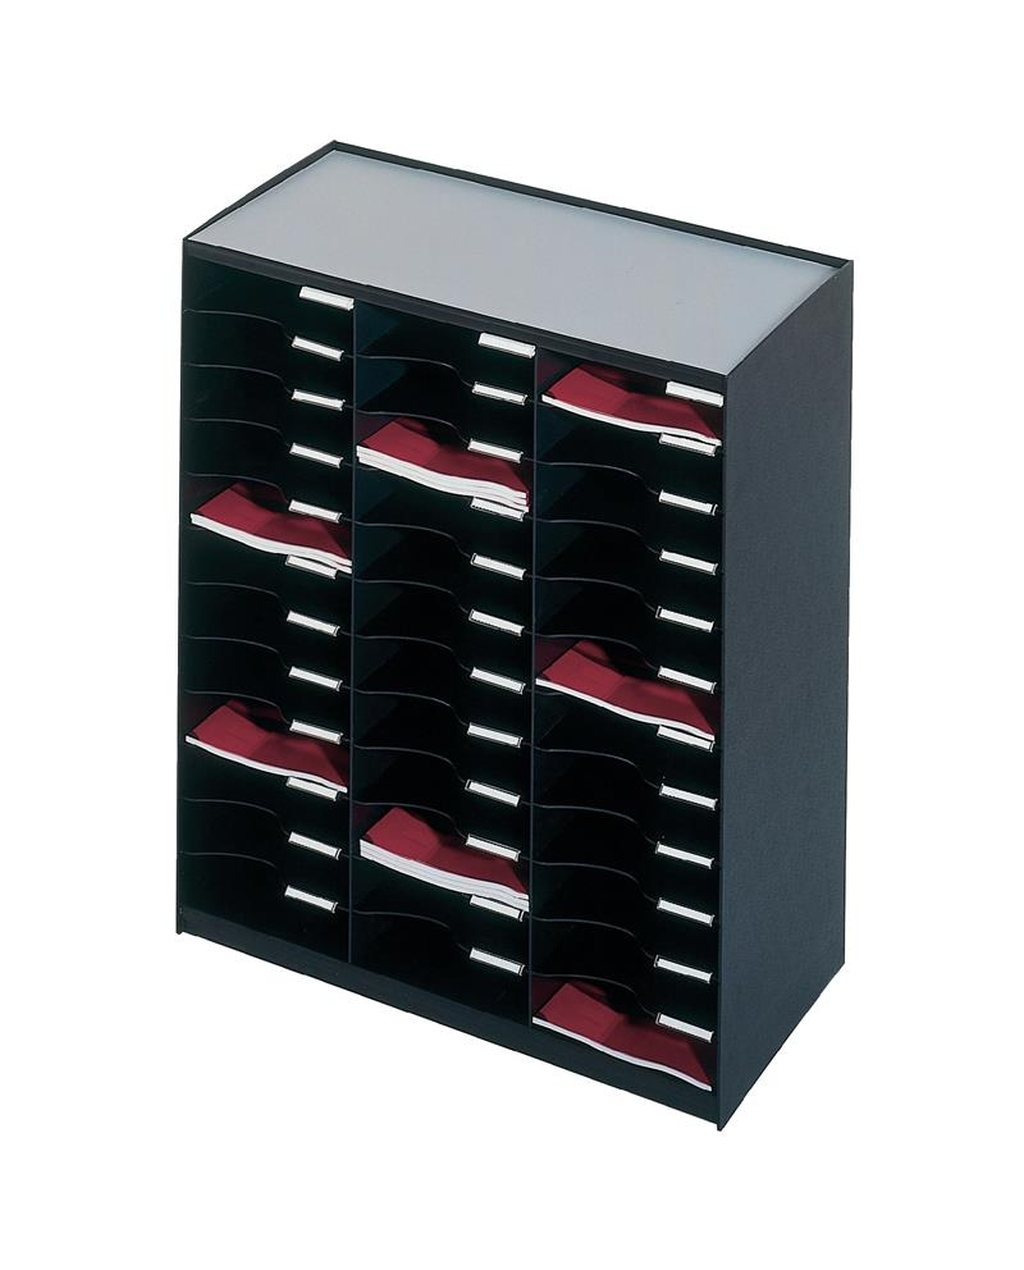 36 Compartment Mailsorter Black